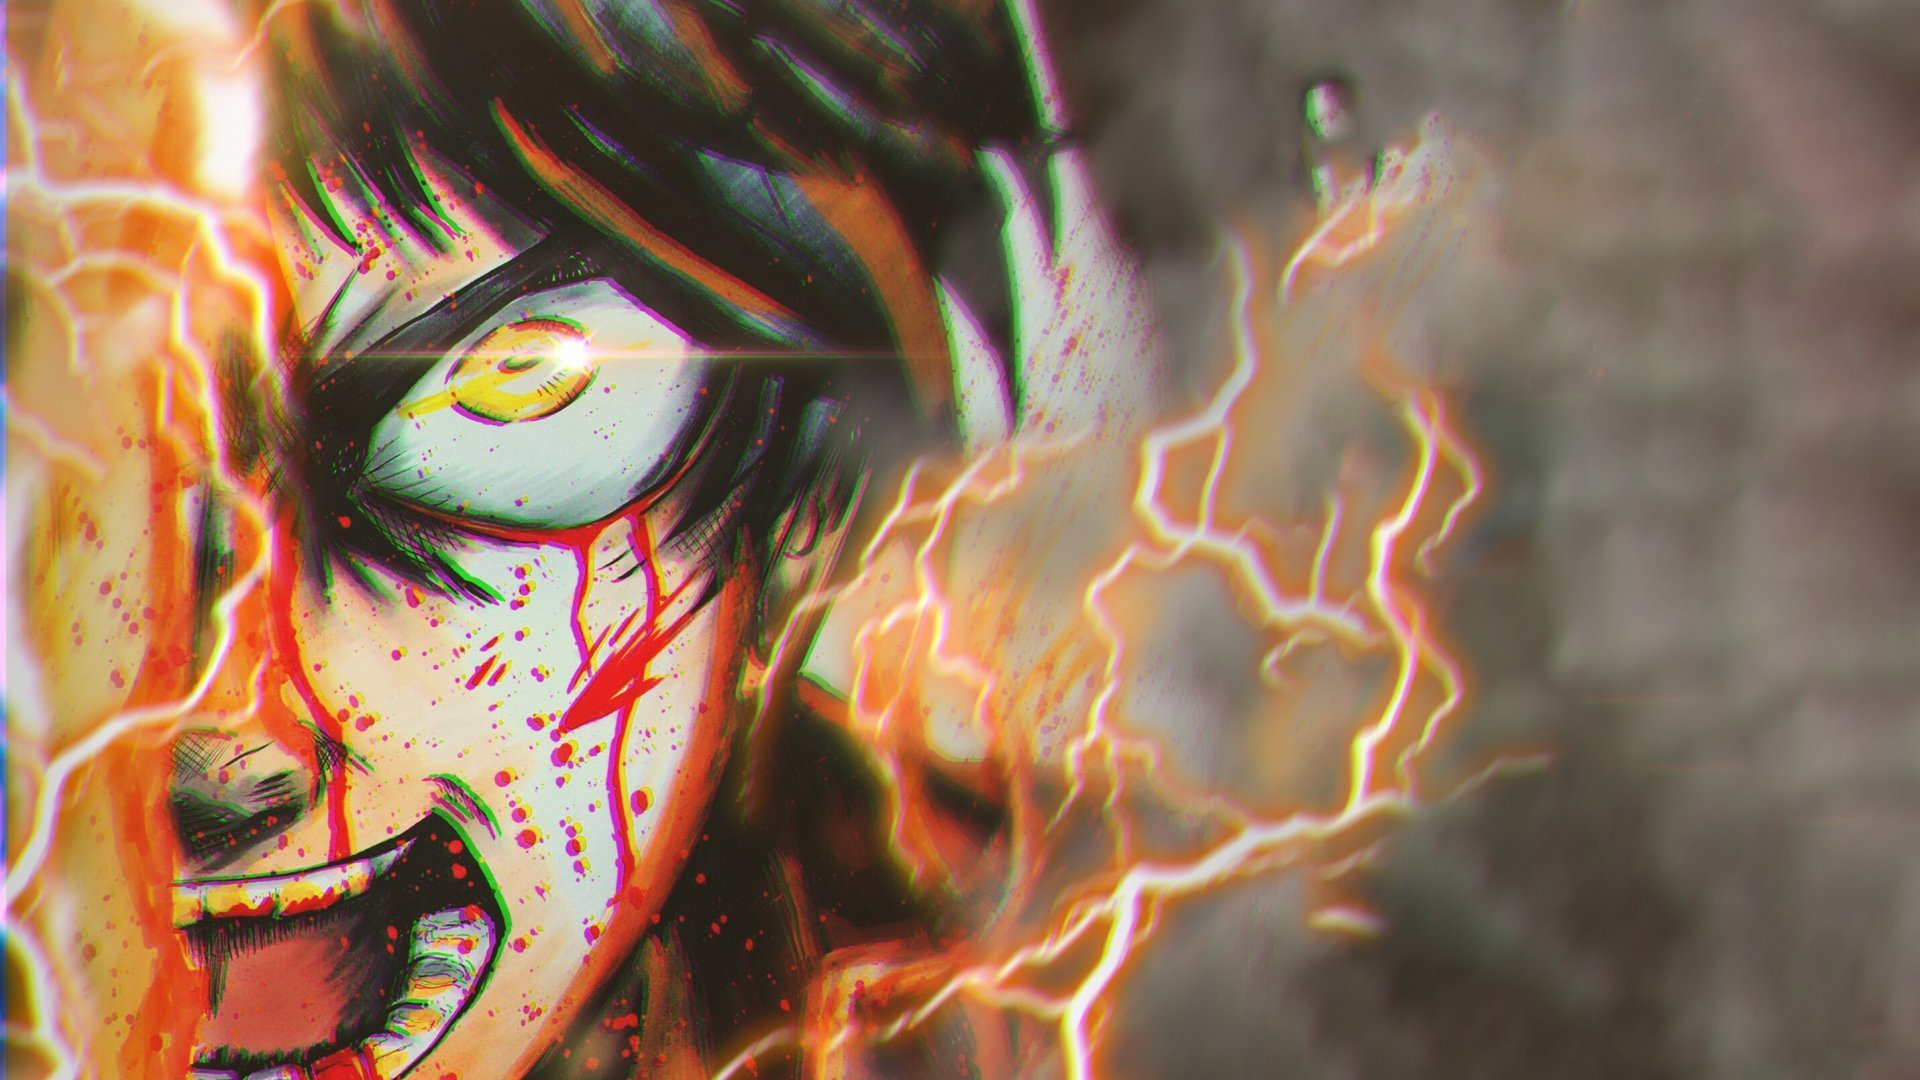 Attack on Titan Chapter 138 Spoilers Predictions: Eren will Resume the Rumbling from Paradis ...